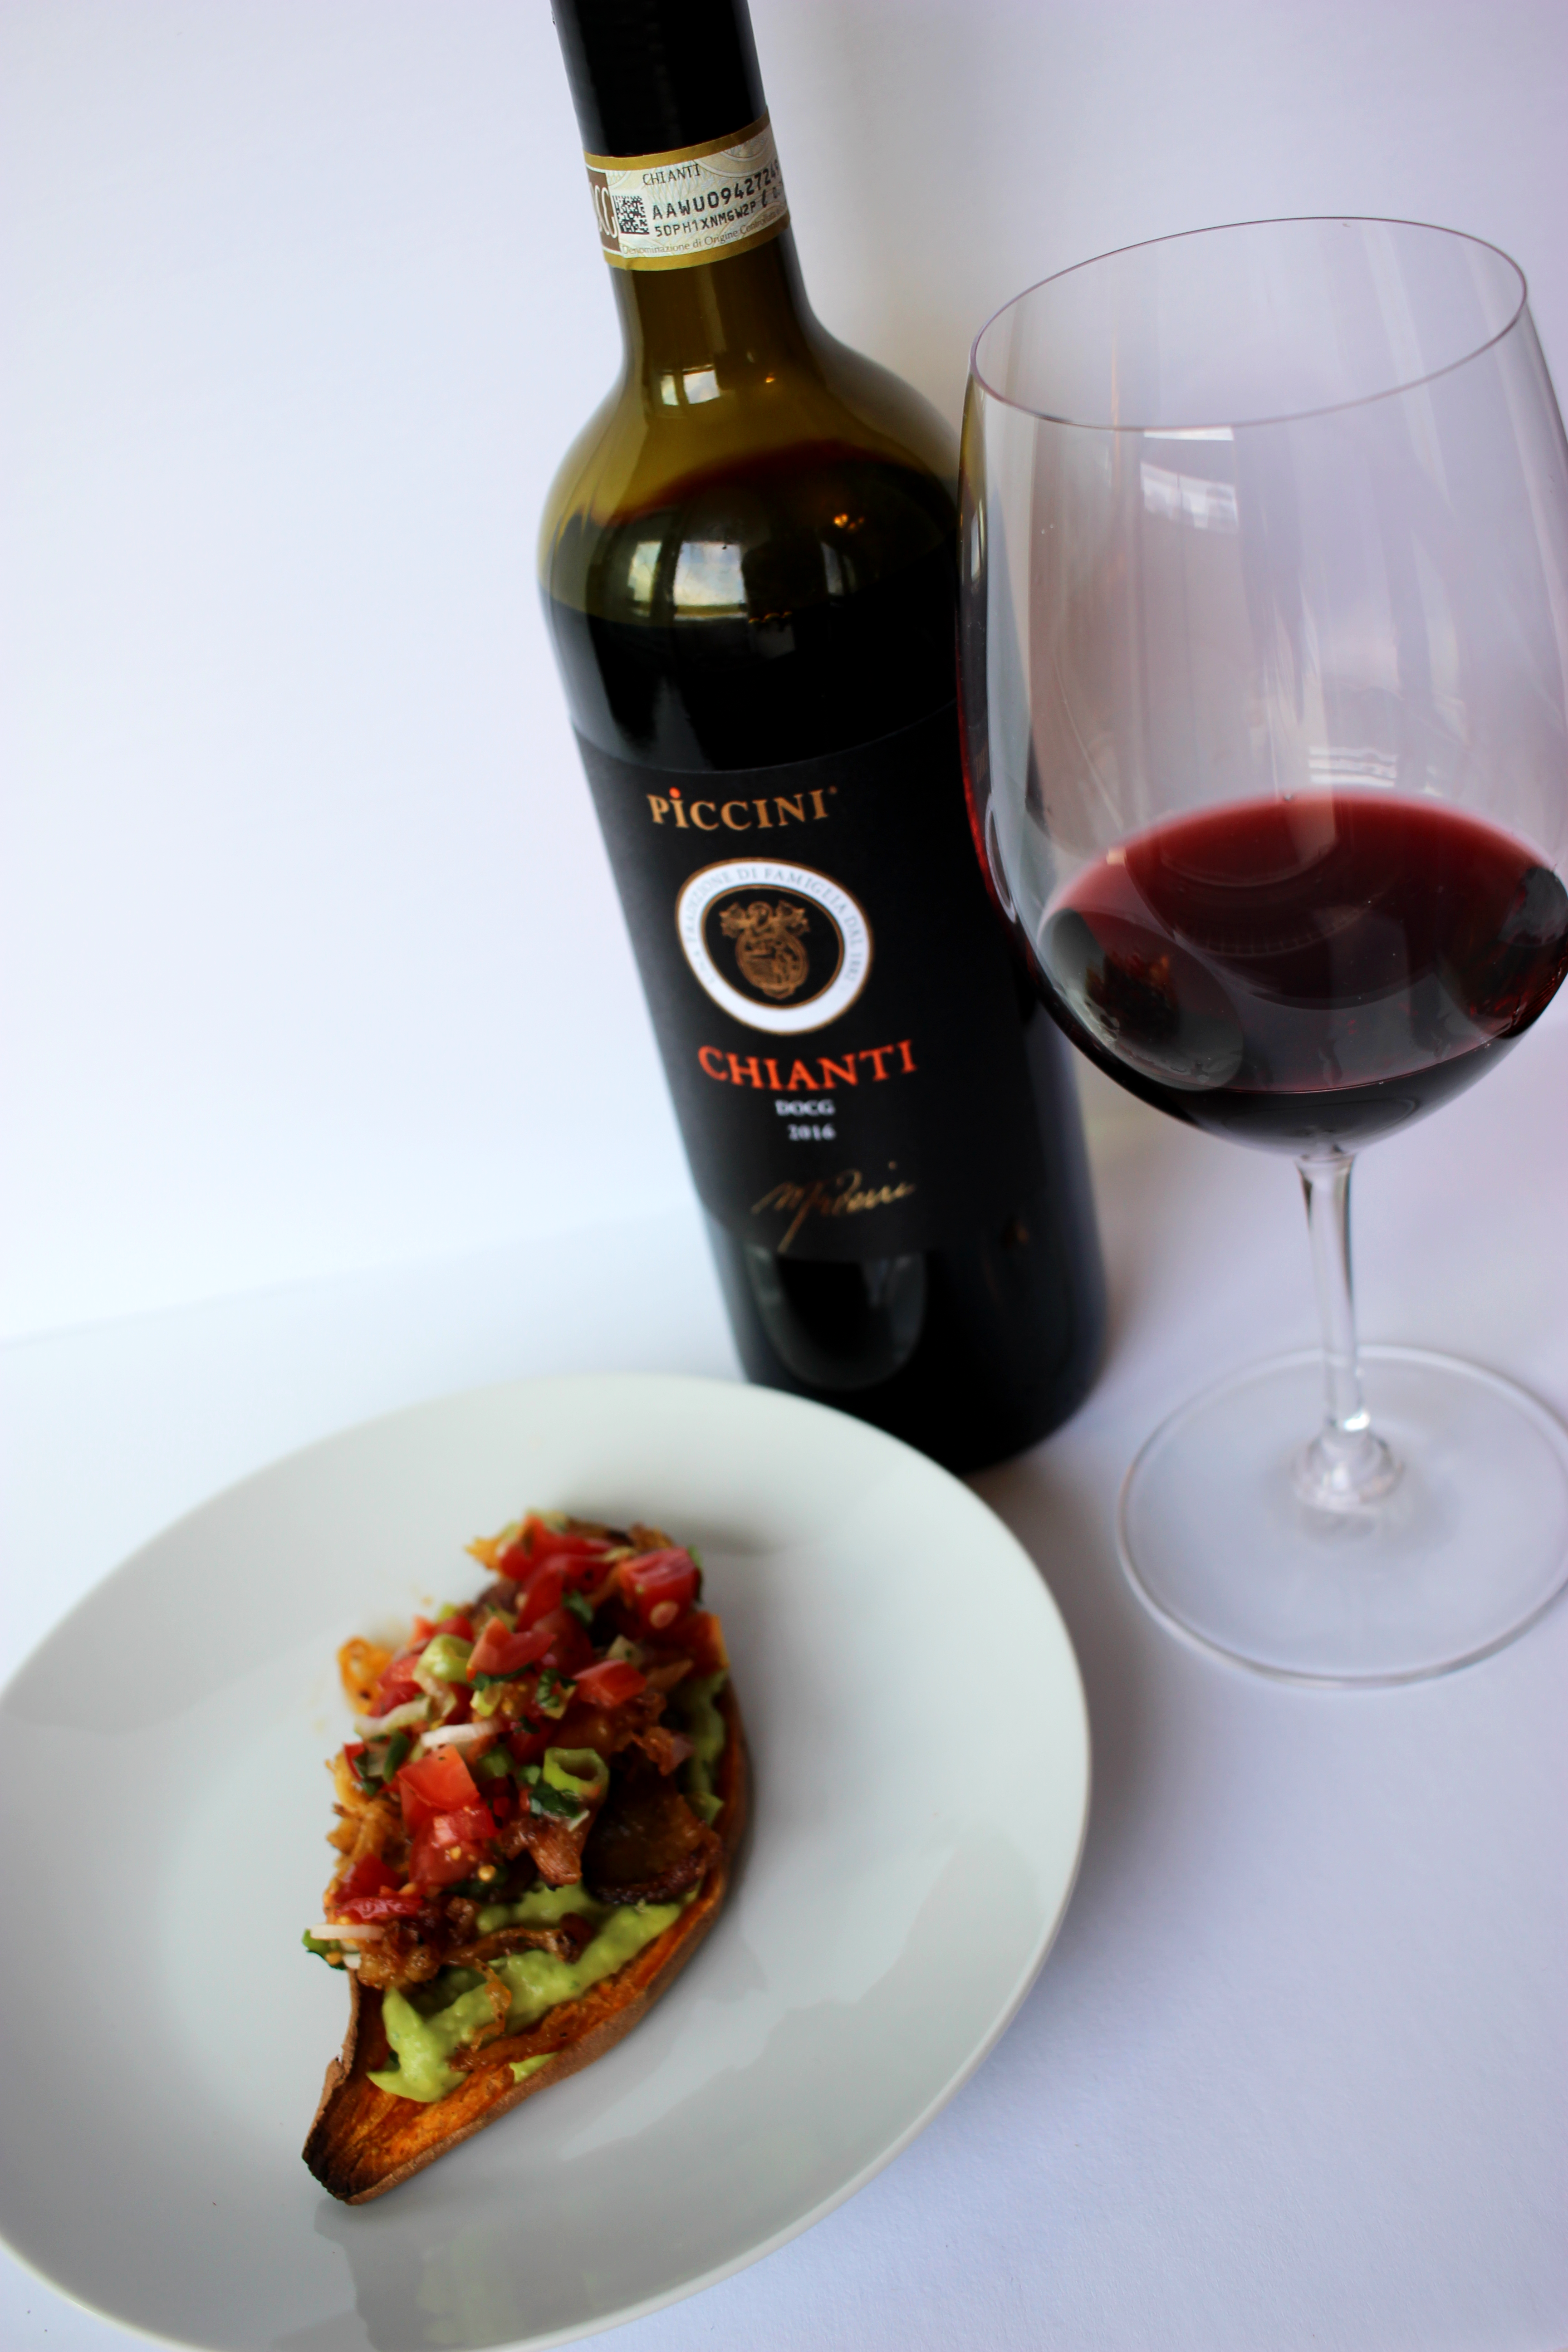 Sweet potato chicken taco with Italian chianti wine pairing